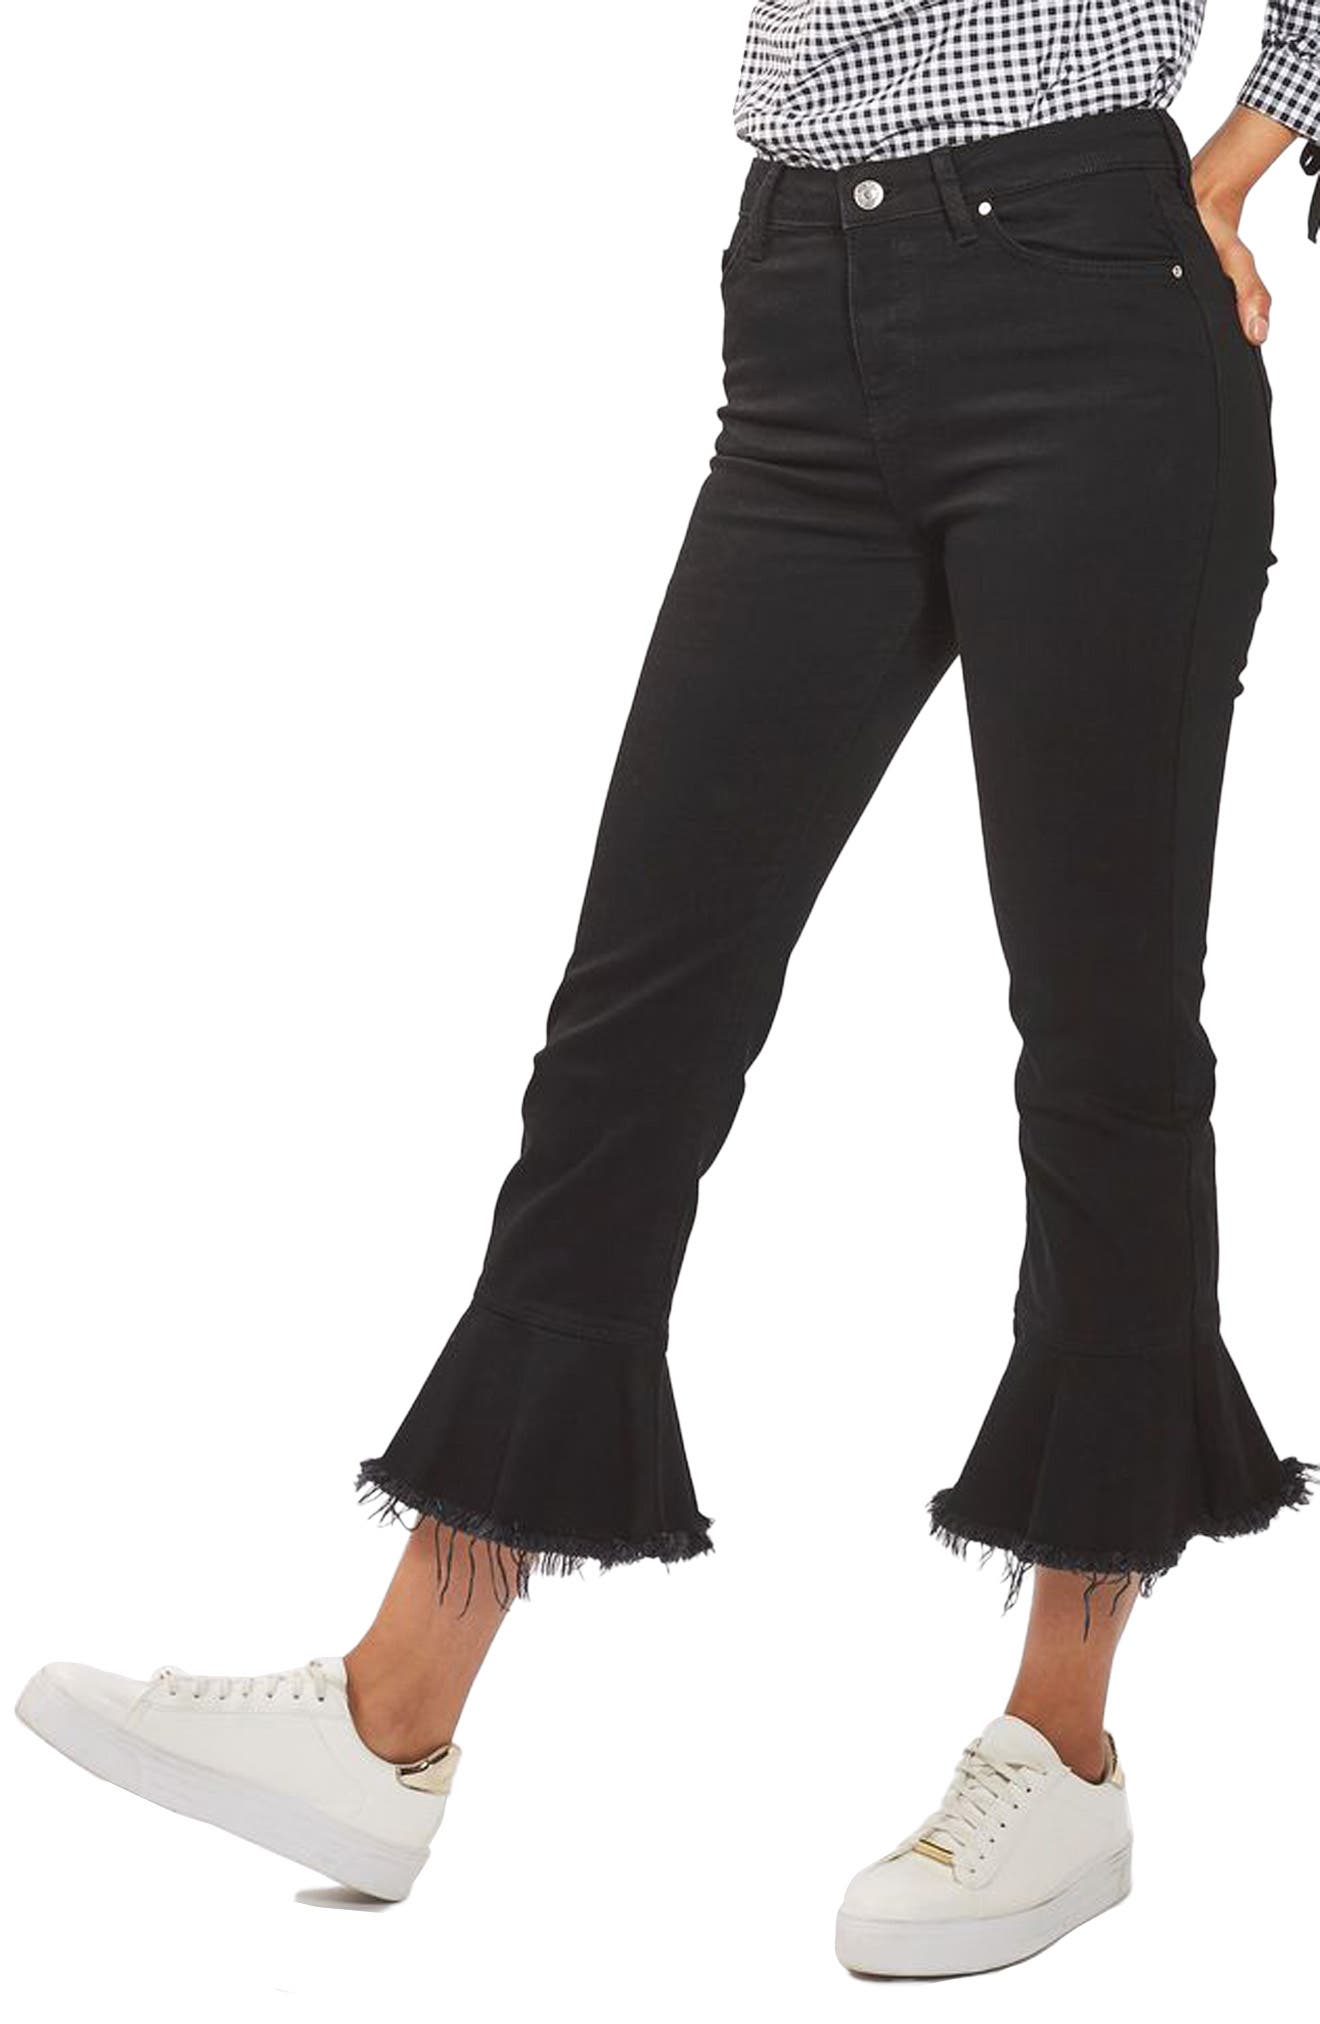 Alternate Image 1 Selected - Topshop Dree Raw Hem Crop Flare Jeans